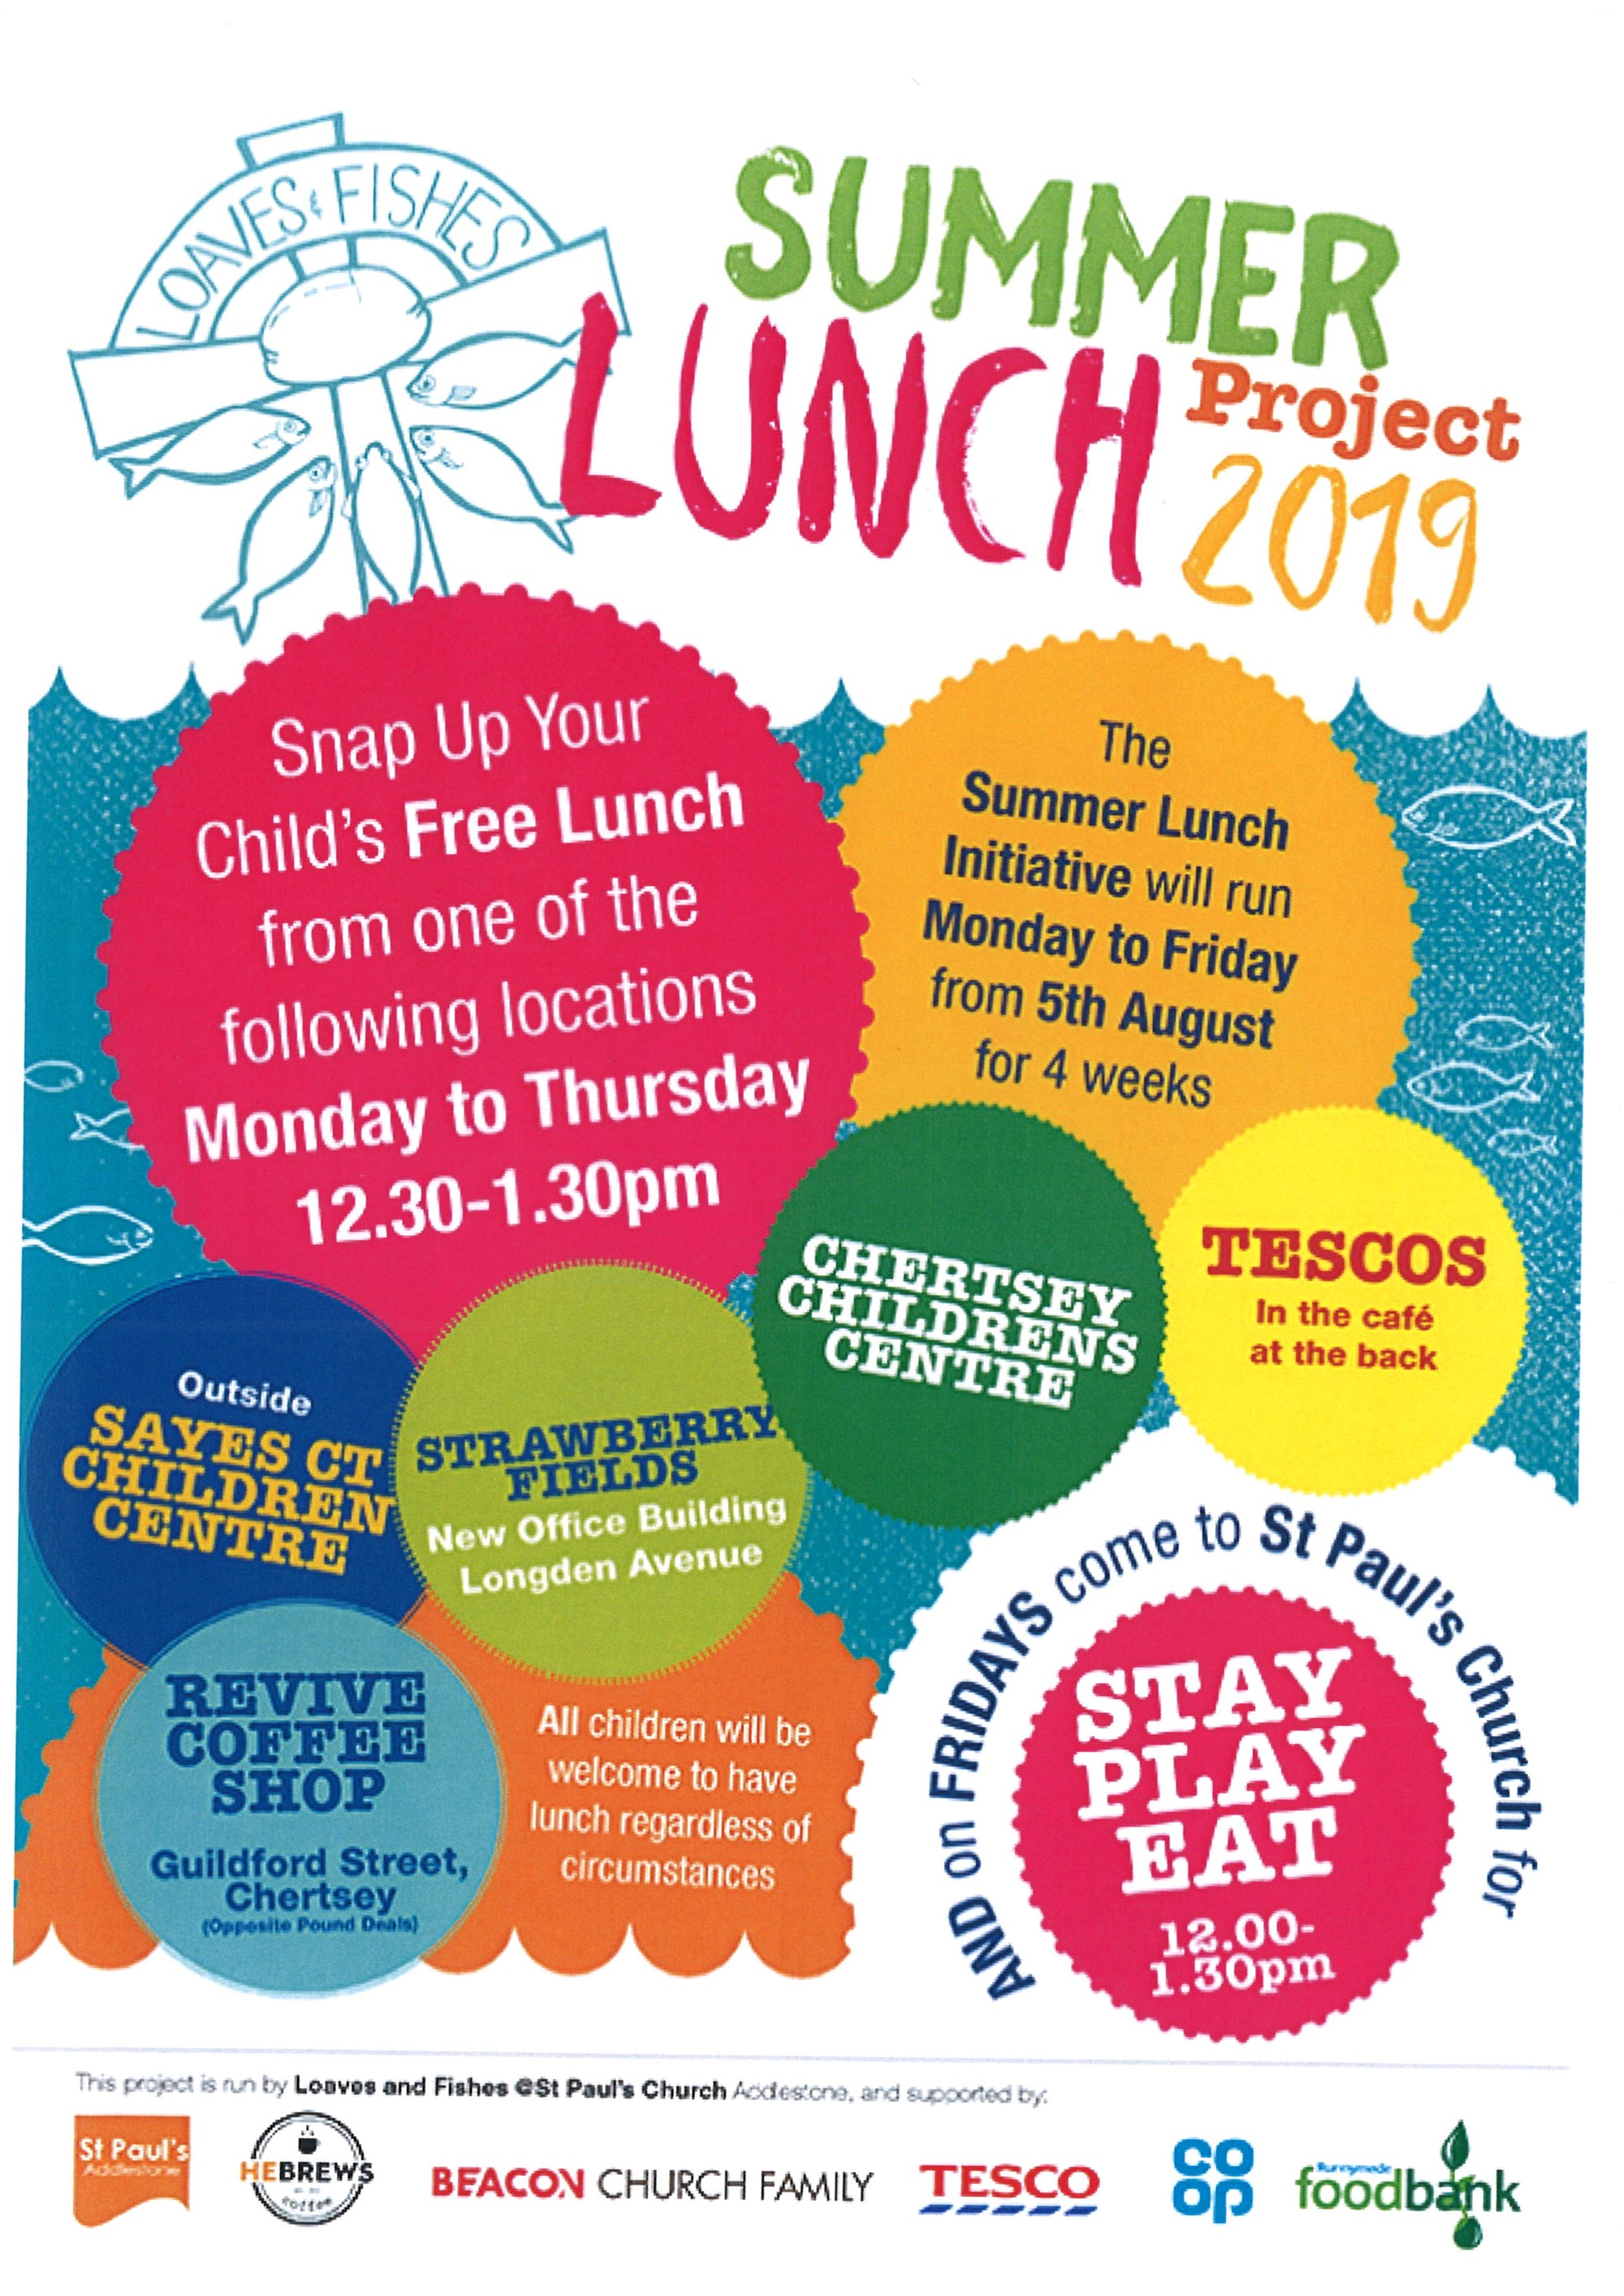 Summer Lunch Project 2019